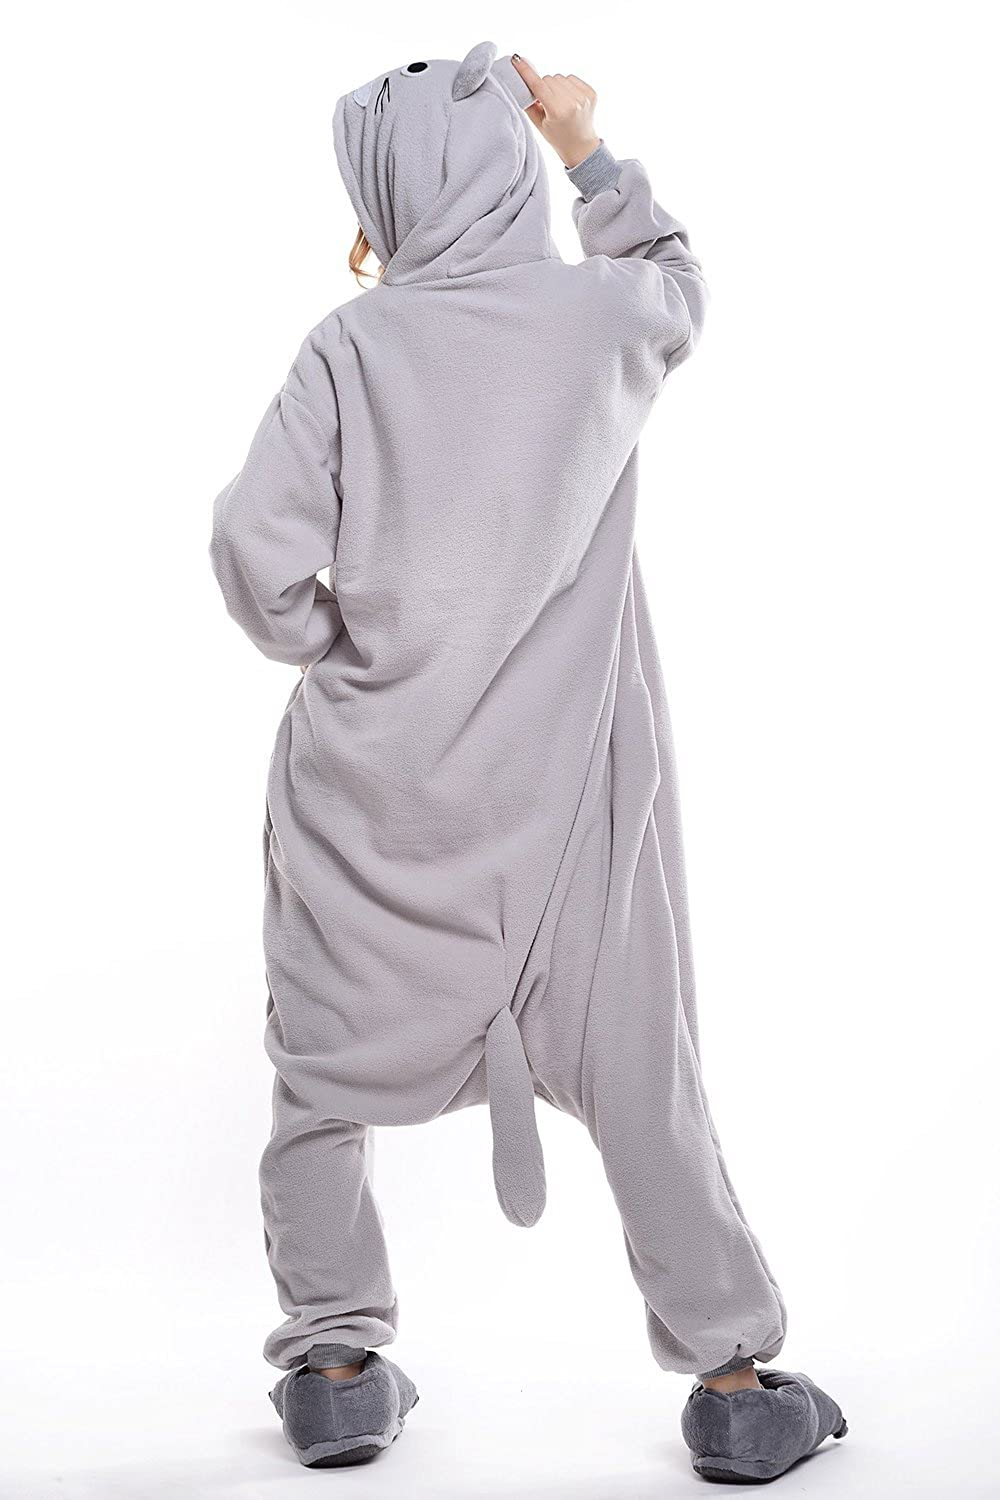 Amazon.com Totoro Adult Unisex Animal Kigurumi Cosplay Costume Pajamas Onesies (S) Clothing  sc 1 st  Amazon.com & Amazon.com: Totoro Adult Unisex Animal Kigurumi Cosplay Costume ...